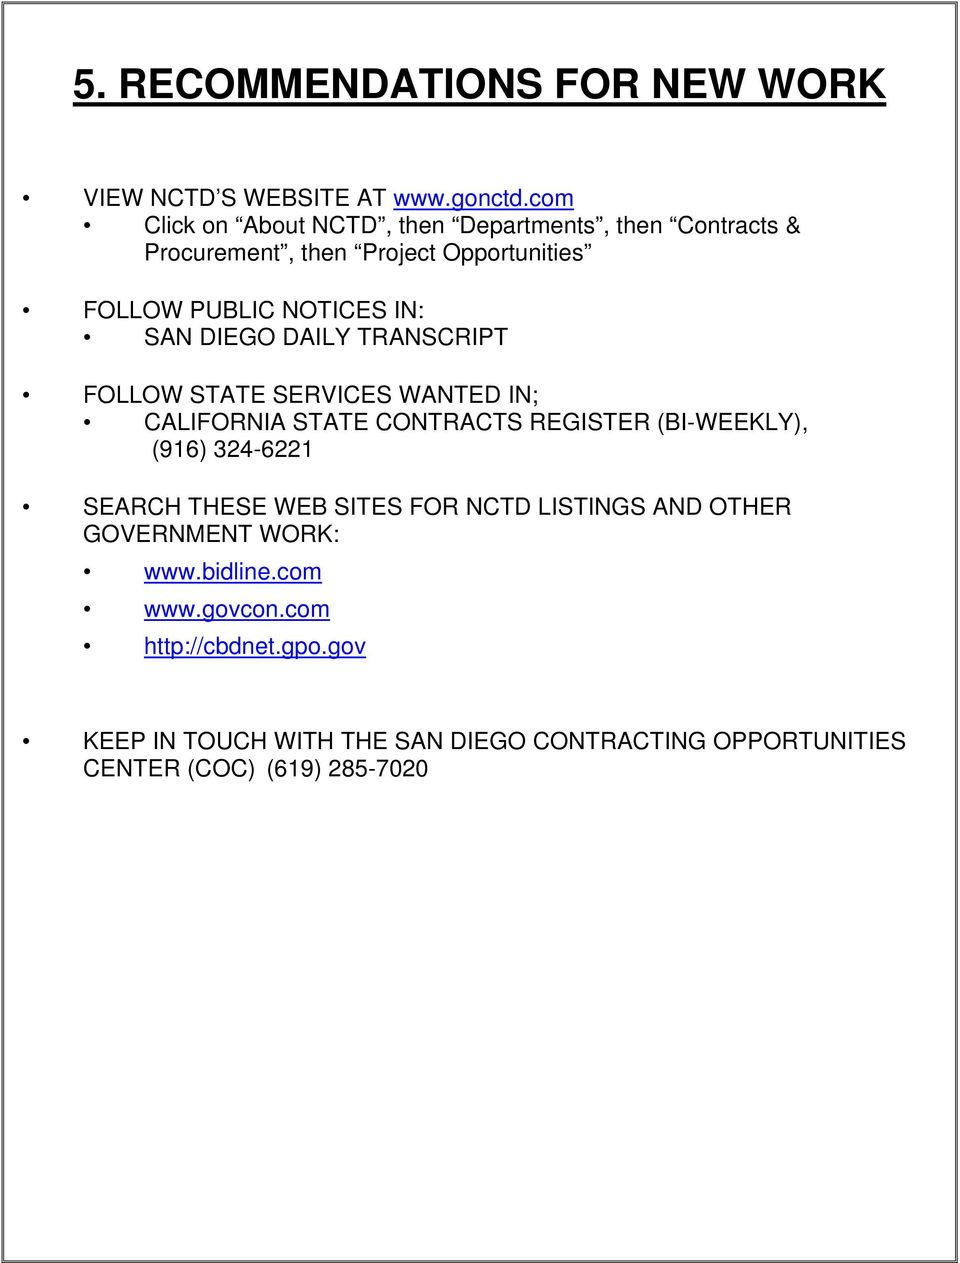 DIEGO DAILY TRANSCRIPT FOLLOW STATE SERVICES WANTED IN; CALIFORNIA STATE CONTRACTS REGISTER (BI-WEEKLY), (916) 324-6221 SEARCH